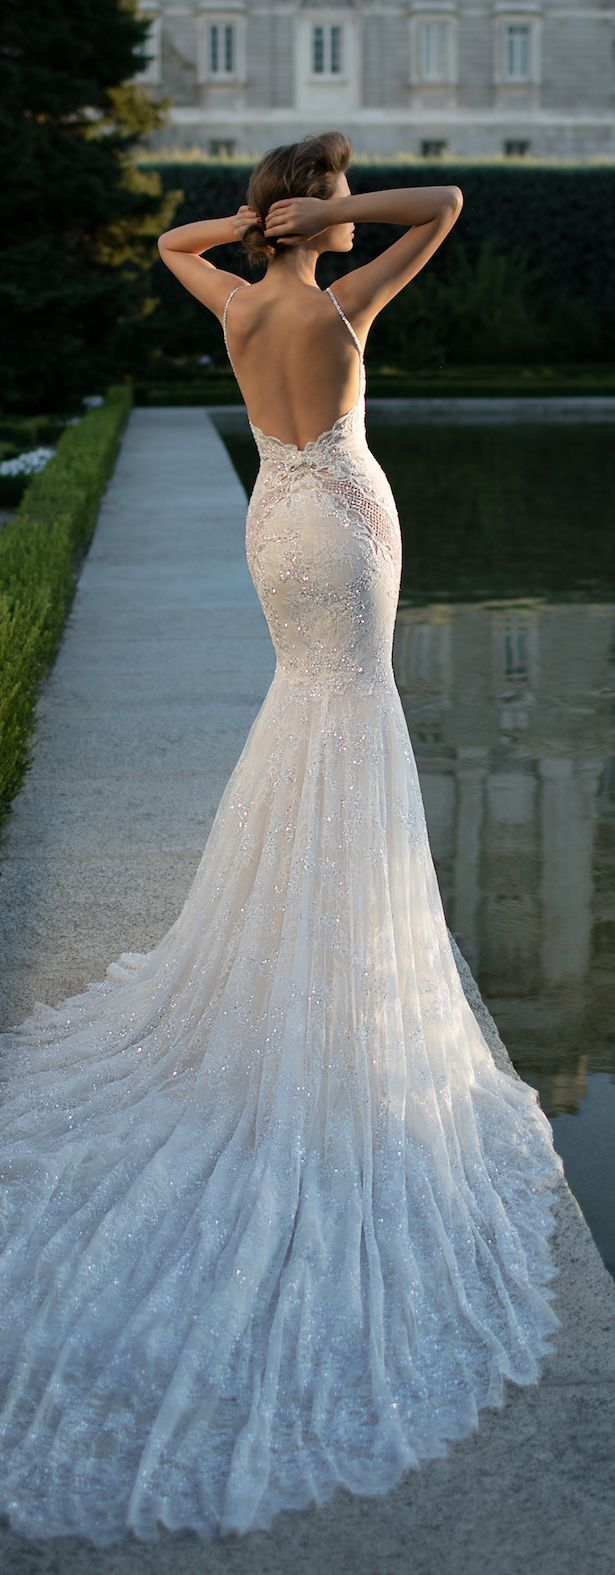 17 best ideas about sleek wedding dress on pinterest for Princess mermaid wedding dresses